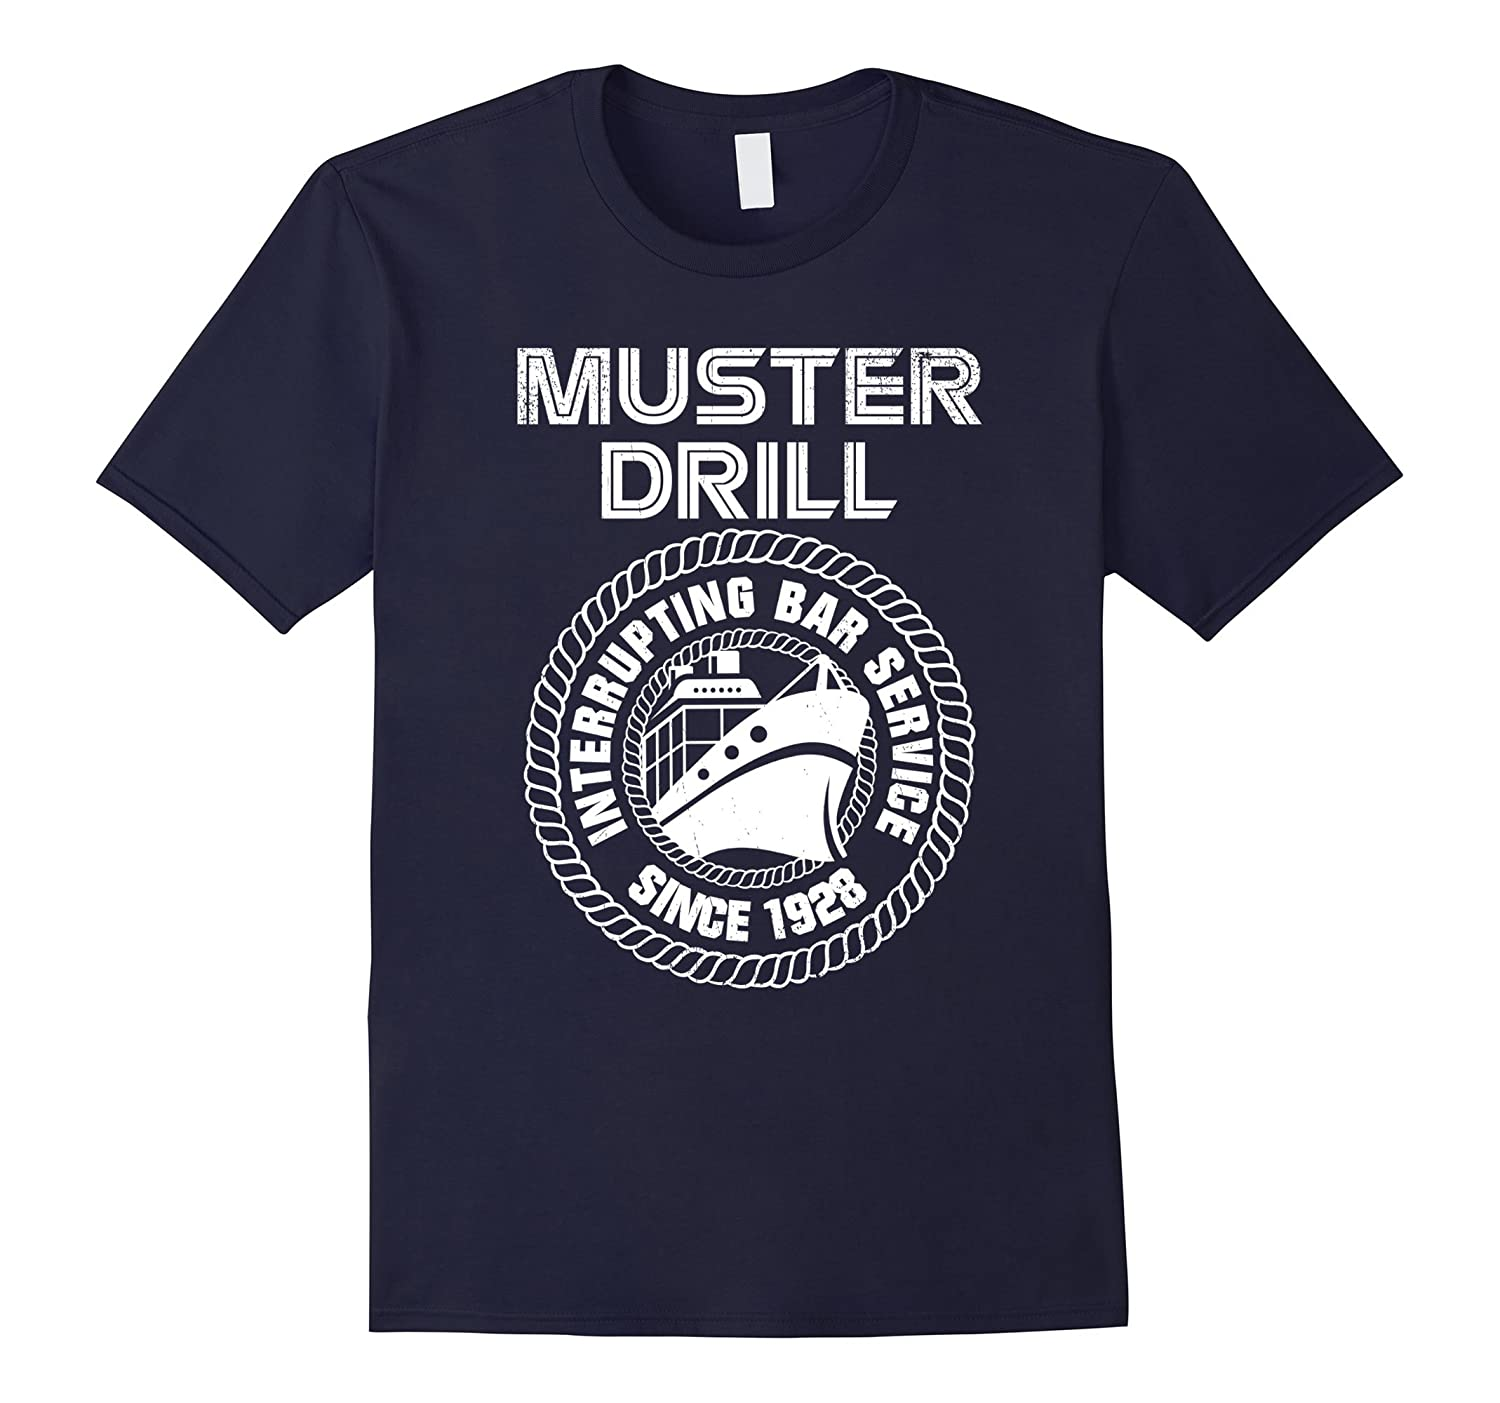 Muster Drill Interrupting Bar Service 1928 Cruise T-Shirt-TH